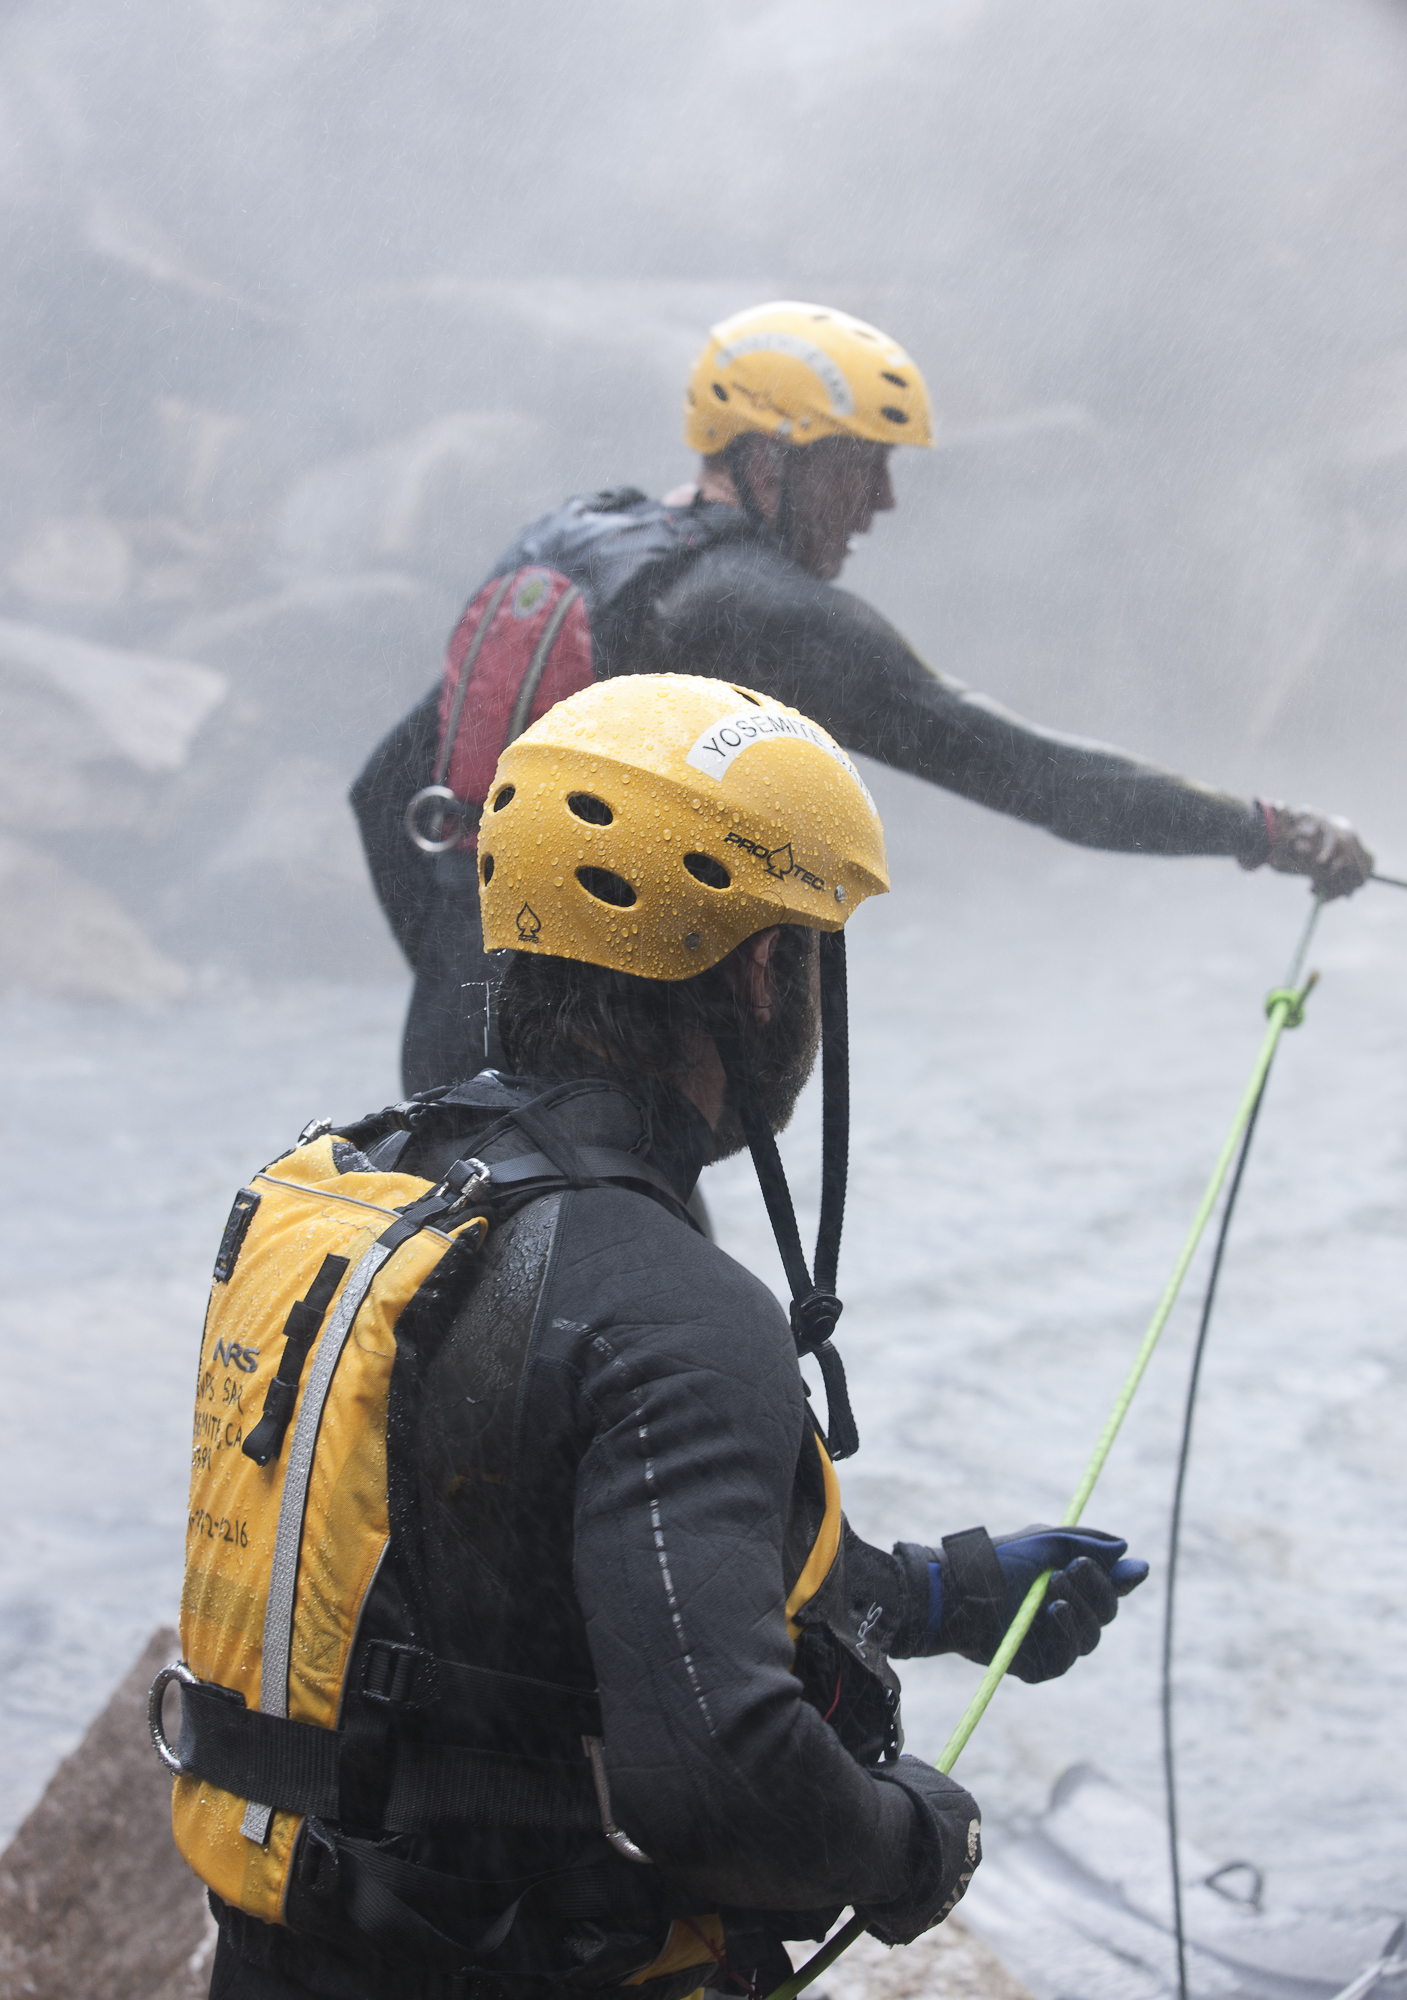 Rescue 3 International - Agency - Moose is qualified to offer Rescue 3 International trainings and certify students in Swiftwater Rescue to Agencies. Course can be customized to meet individual agency locations and challenges but must meet the curriculum standards of Rescue 3 International to gain certification. Moose is proud to partner with Sierra Rescue - a premier Swiftwater Rescue training provider in the USA.